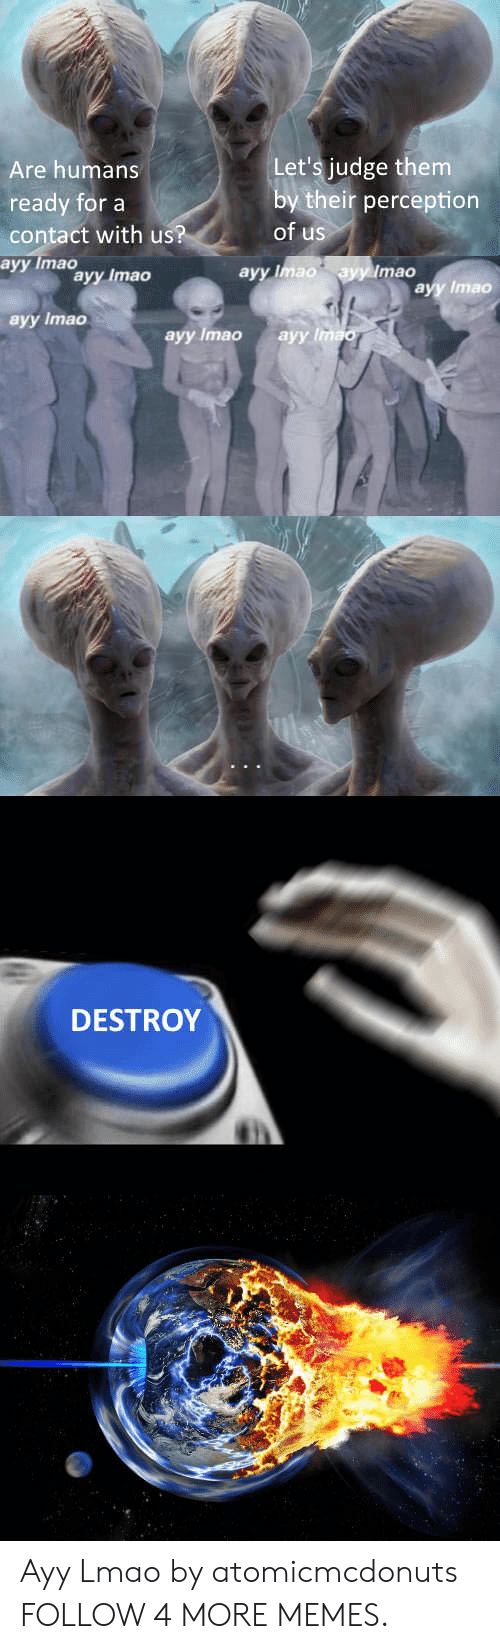 Ayy LMAO: Let's judge them  by their perception  of us  Are humans  ready for a  contact with us?  ayy Imao  ayy Imao  ayy Imao  ayy Imao  ayy Ima  аyy Imao  ayy Imao  аyy linao  DESTROY Ayy Lmao by atomicmcdonuts FOLLOW 4 MORE MEMES.